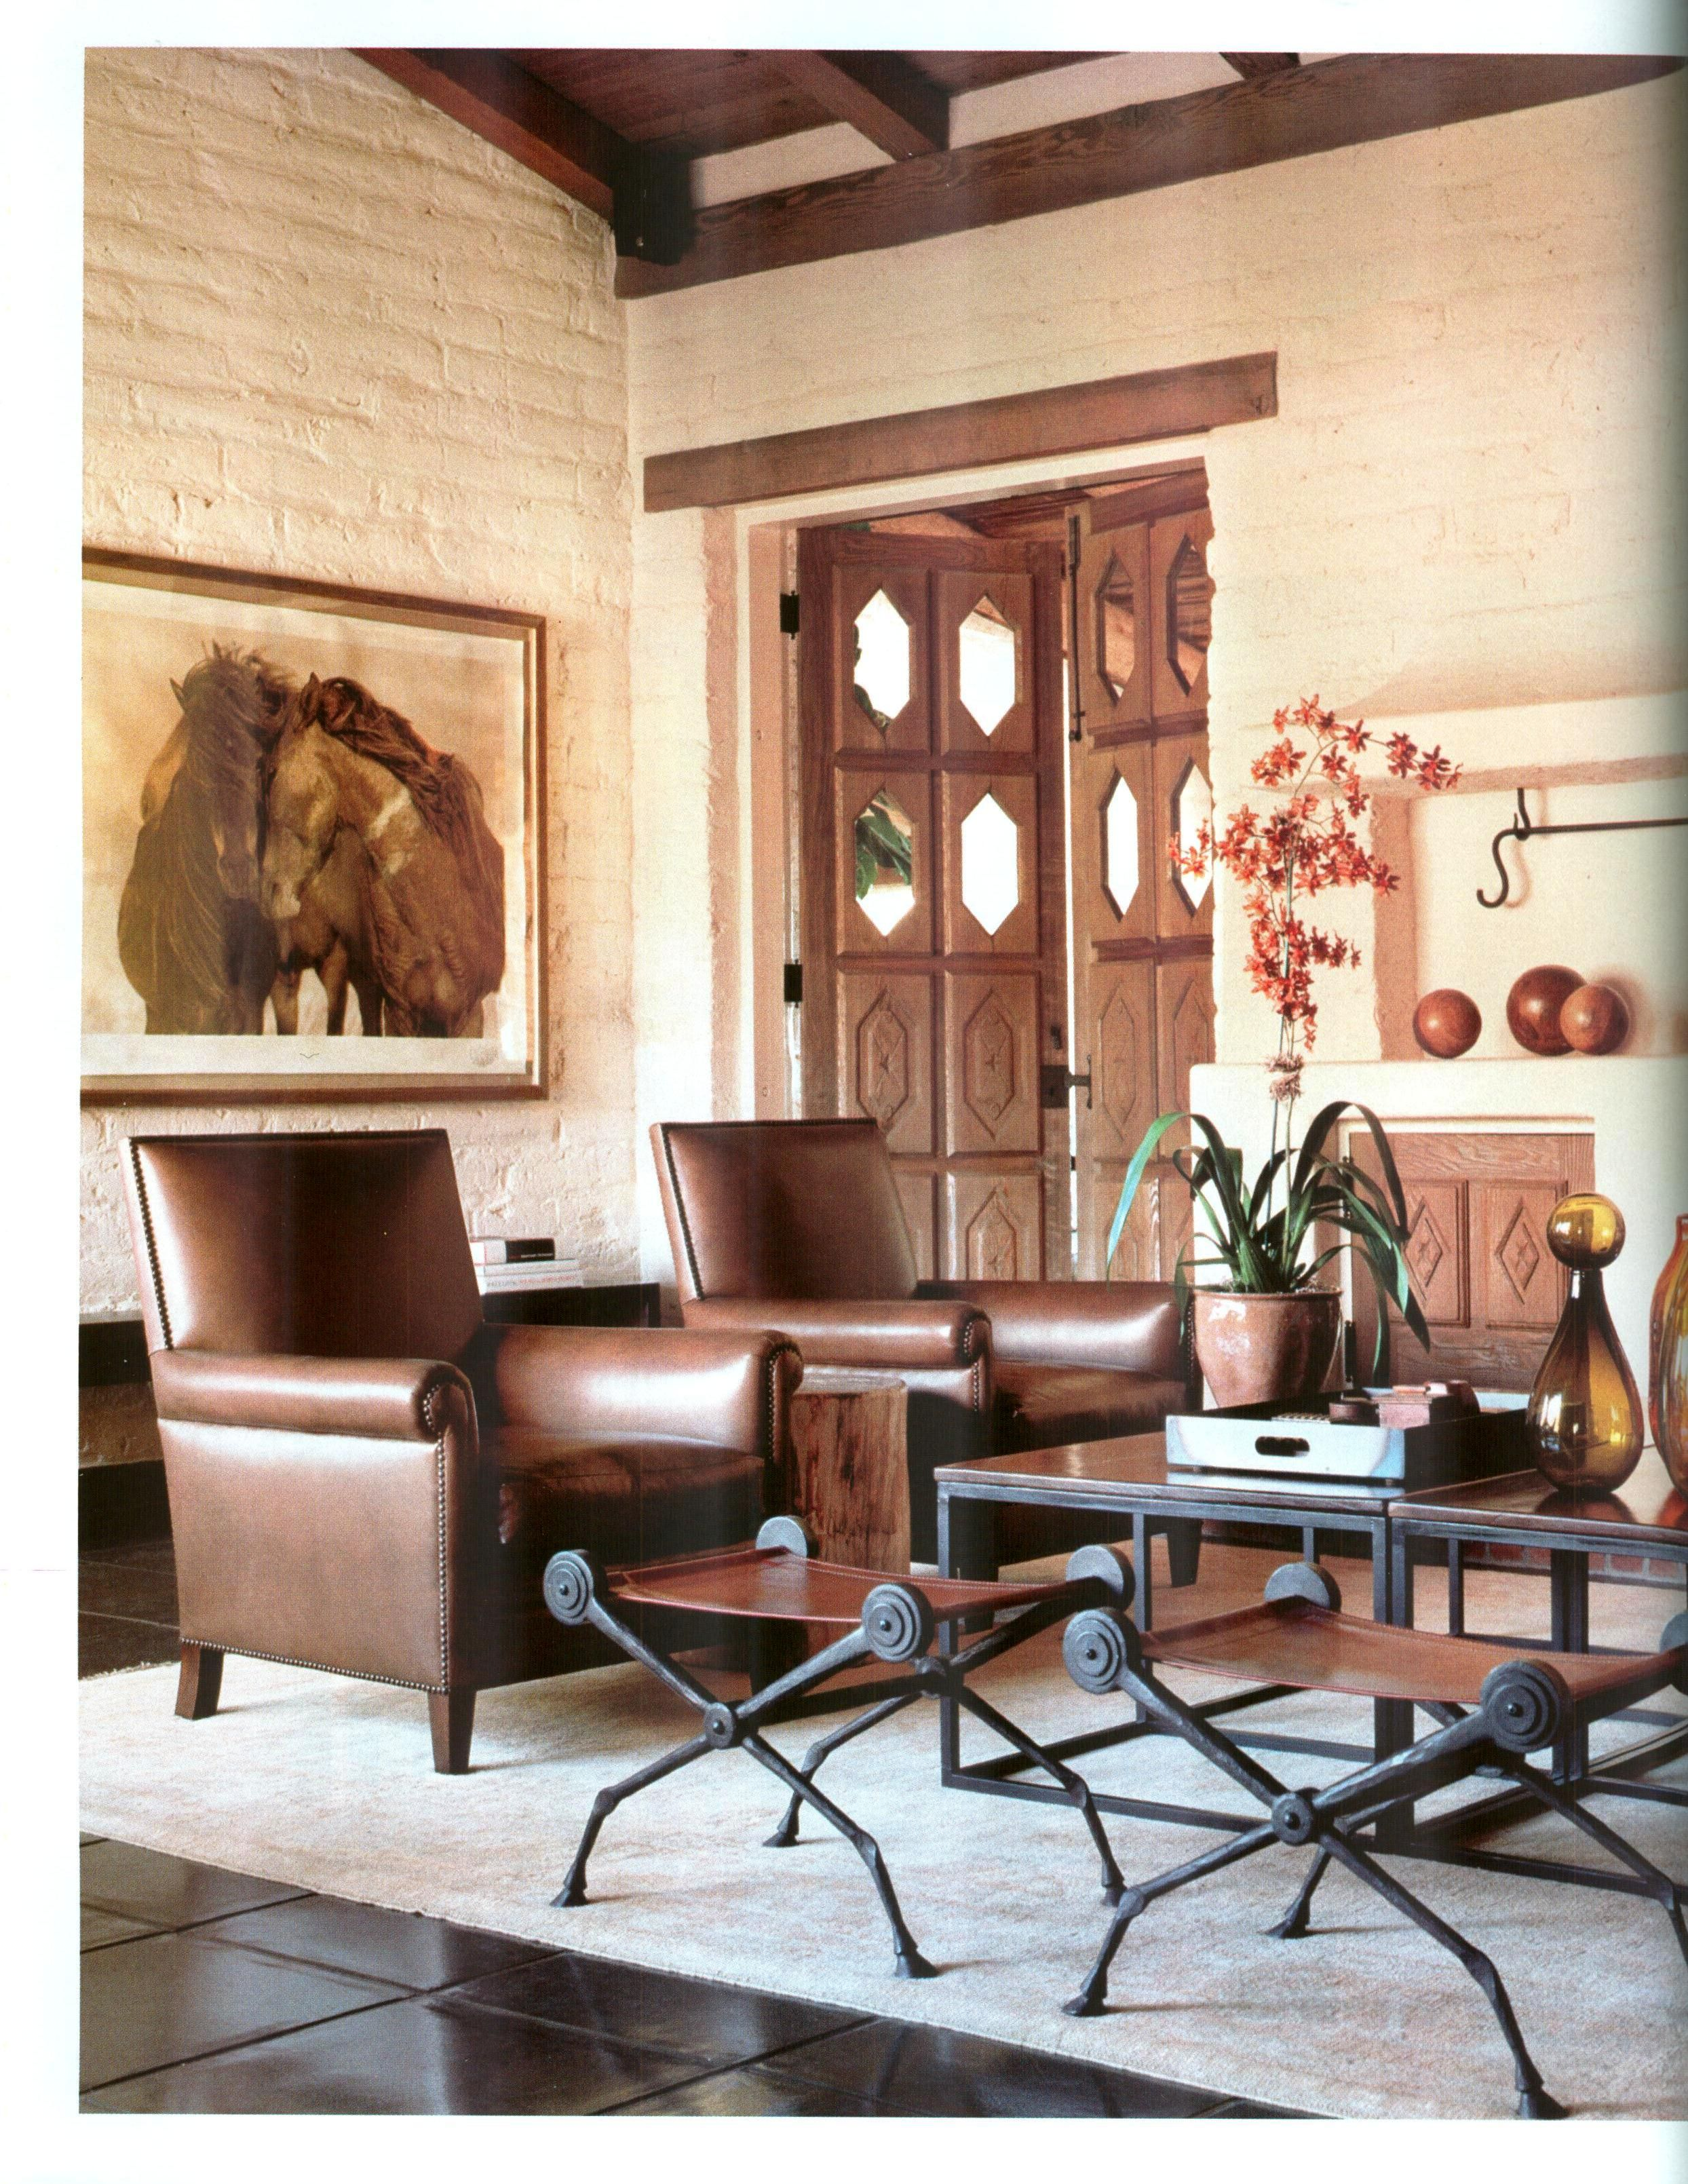 transitional living room in neutrals browns creams